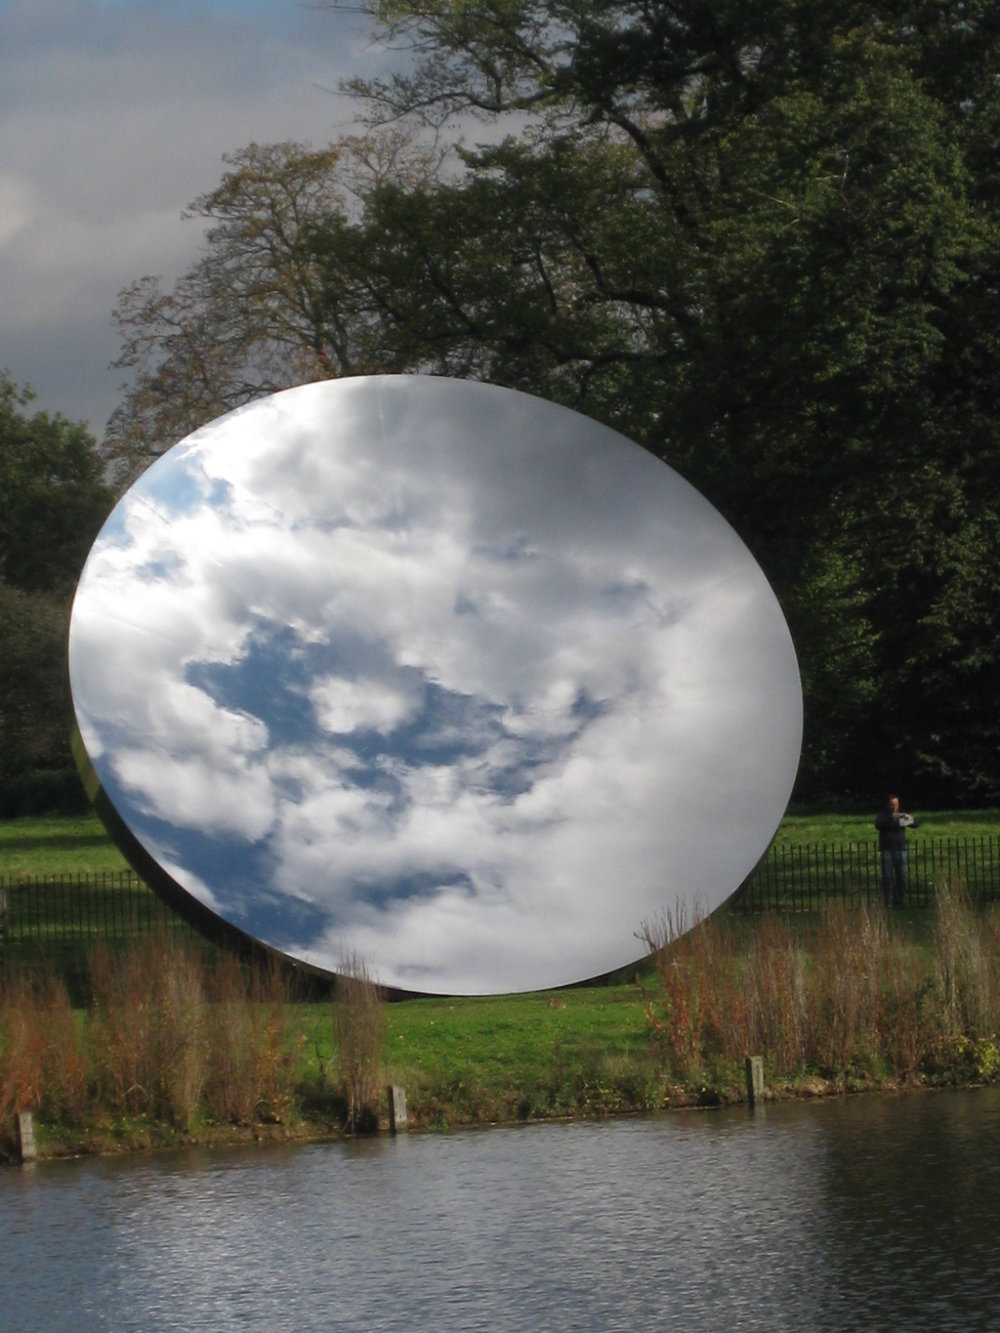 Anish Kapoor,  Sky Mirror ,   Commissioned by the Nottingham Playhouse from the artist, it is installed outside the theater in Wellington Circus, Nottingham, England. It was installed in Rockefeller Plaza in New York City BEFORE this in 2006.